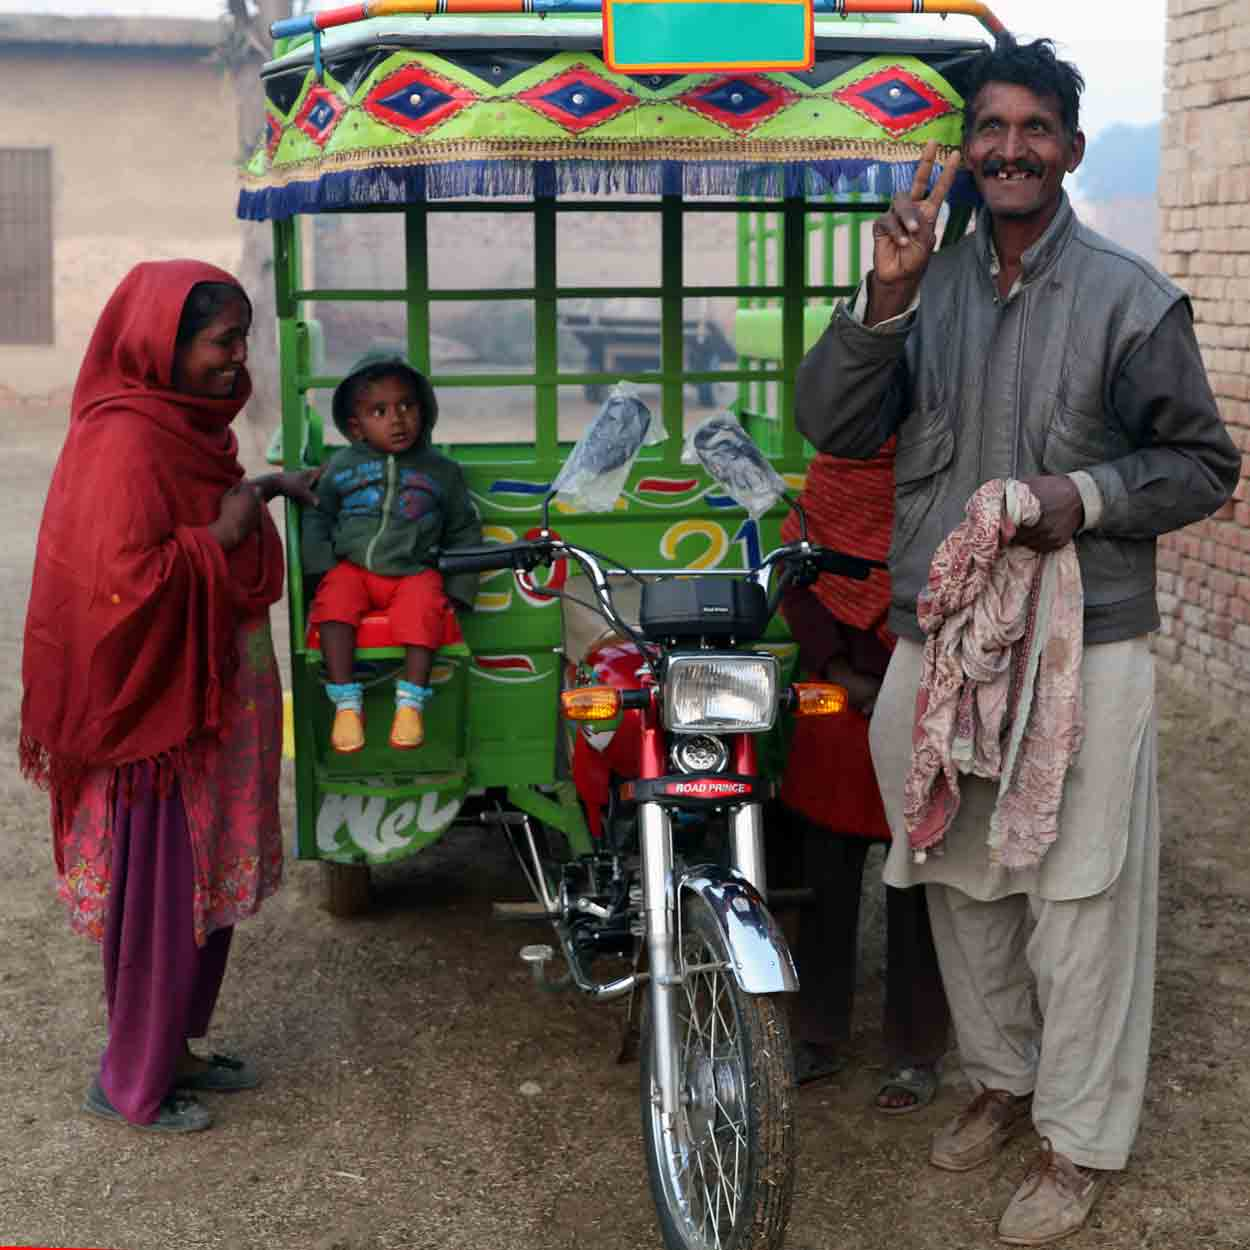 Hamza and his family will now operate a rickshaw business.